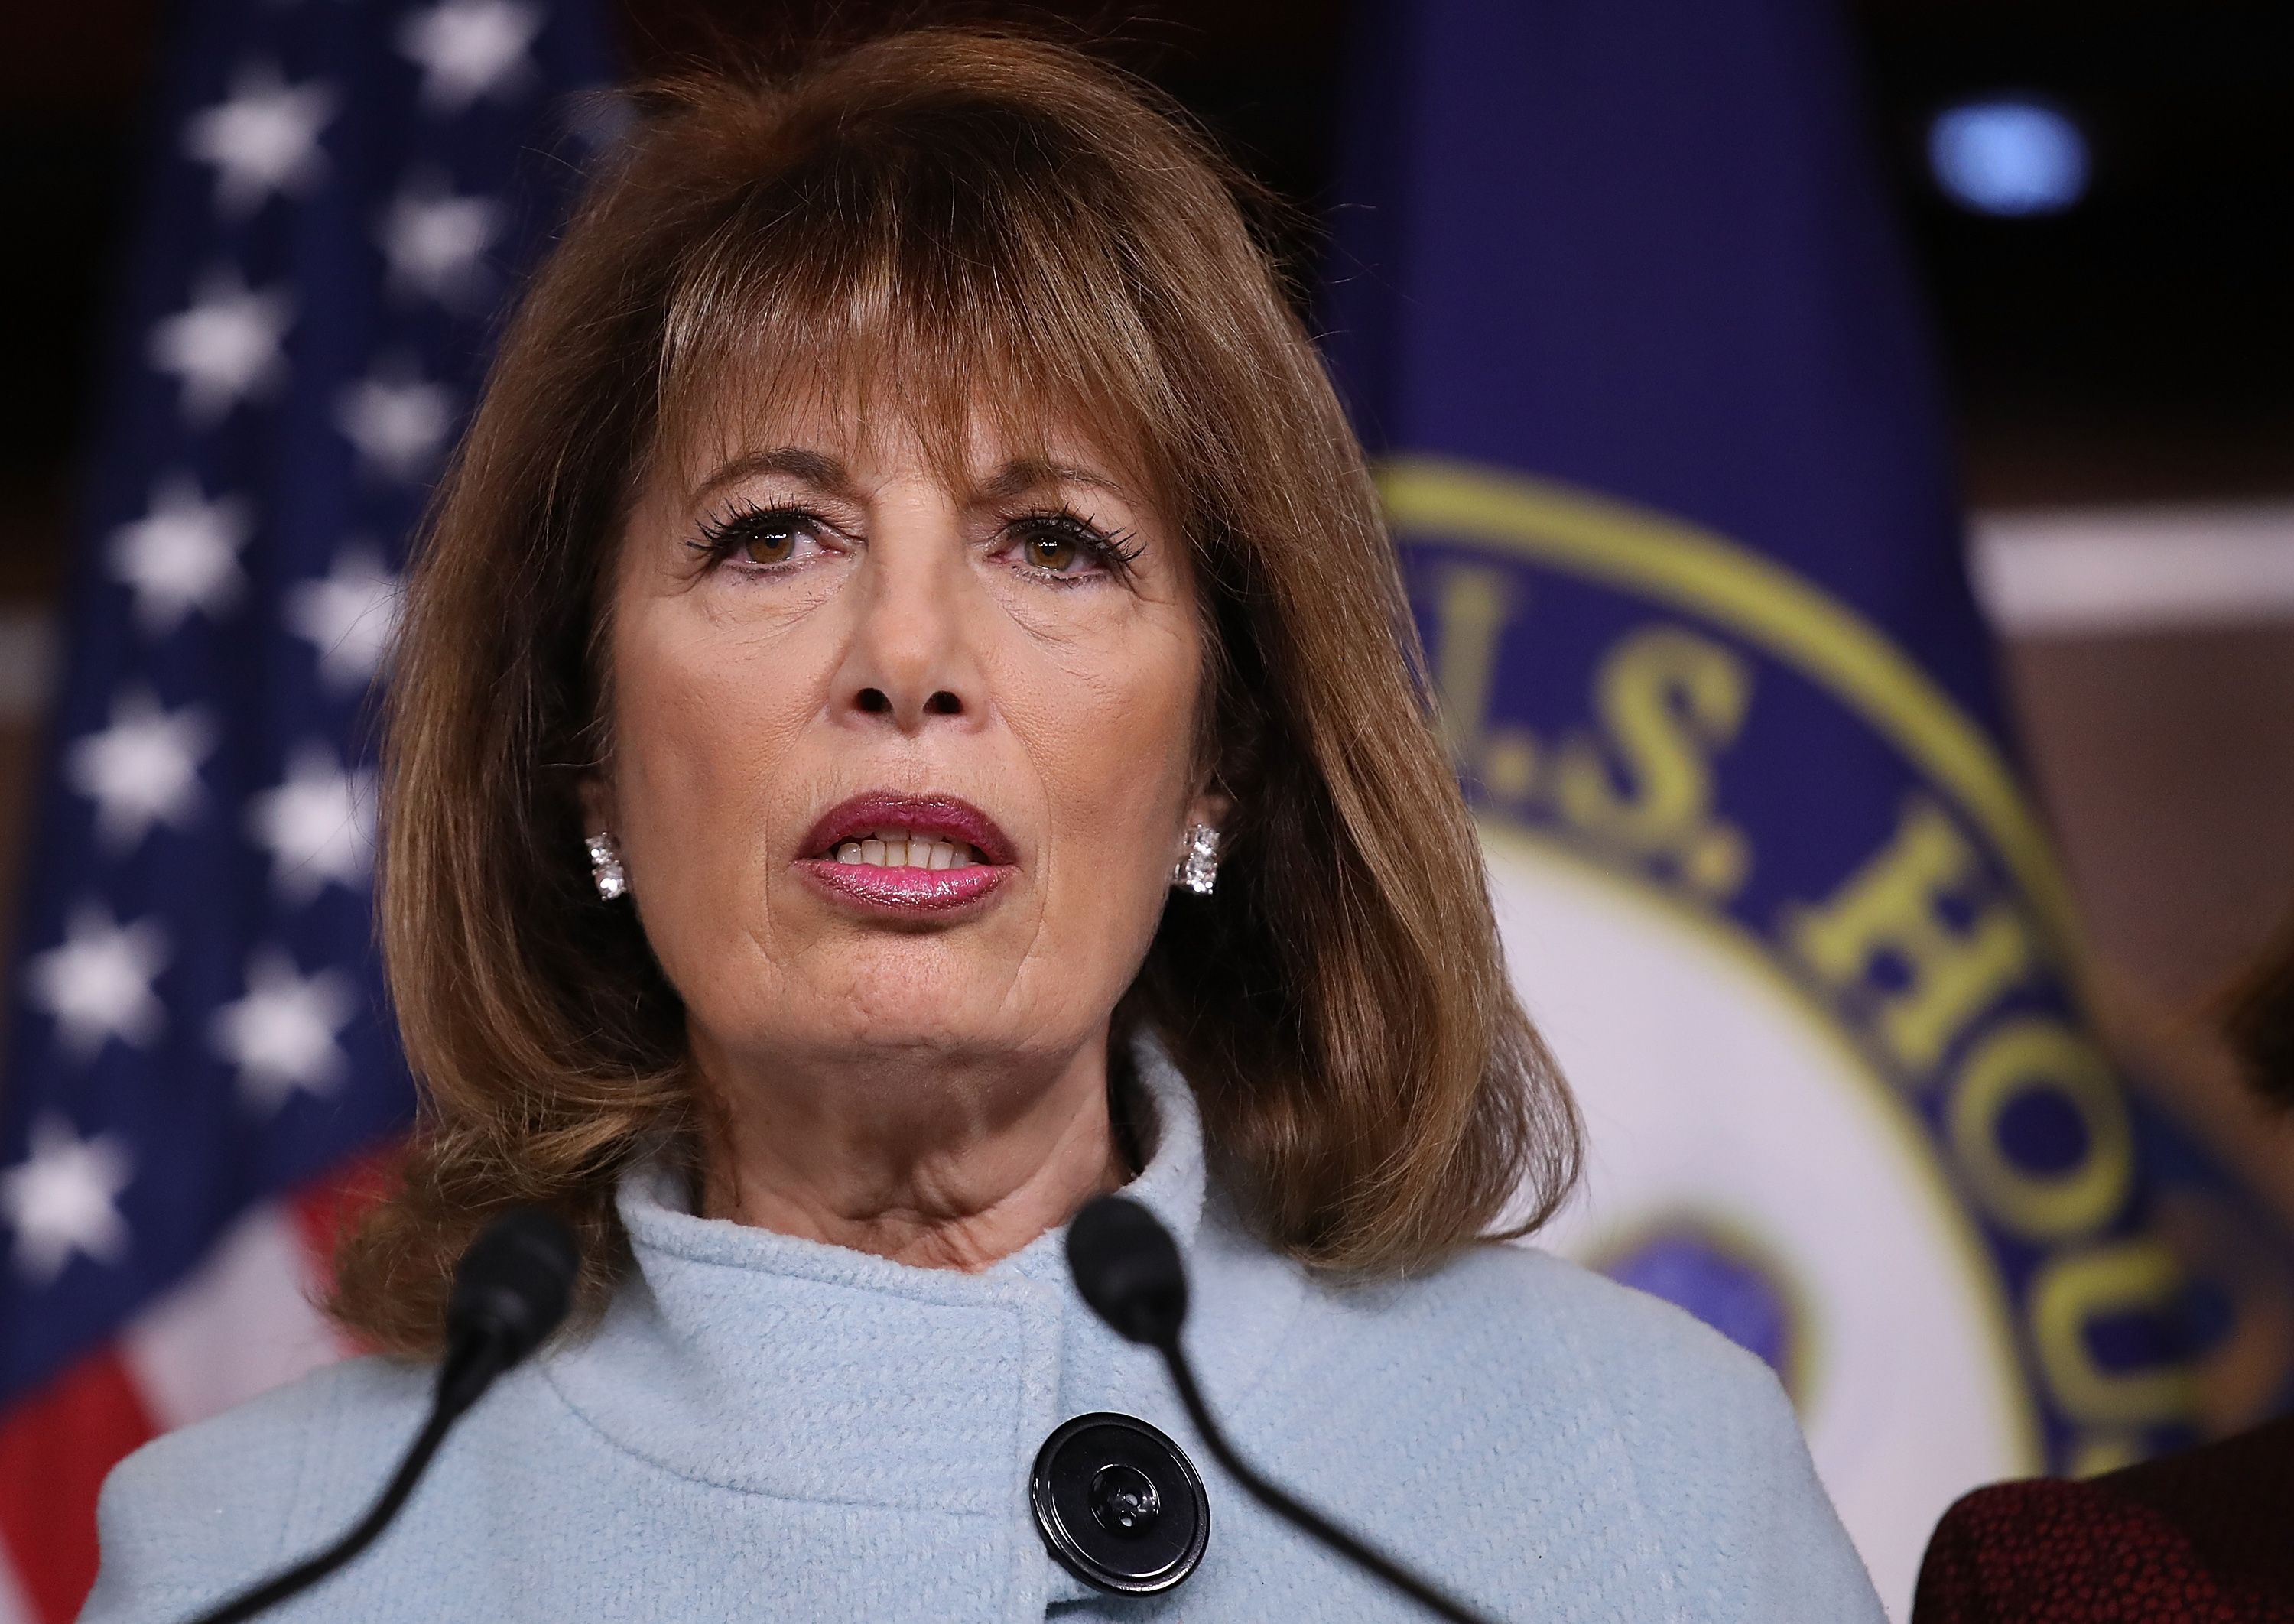 Rep. Jackie Speier: 'Our Fight Is Not Complete Until Women's Rights Are Protected Under the Constitution'